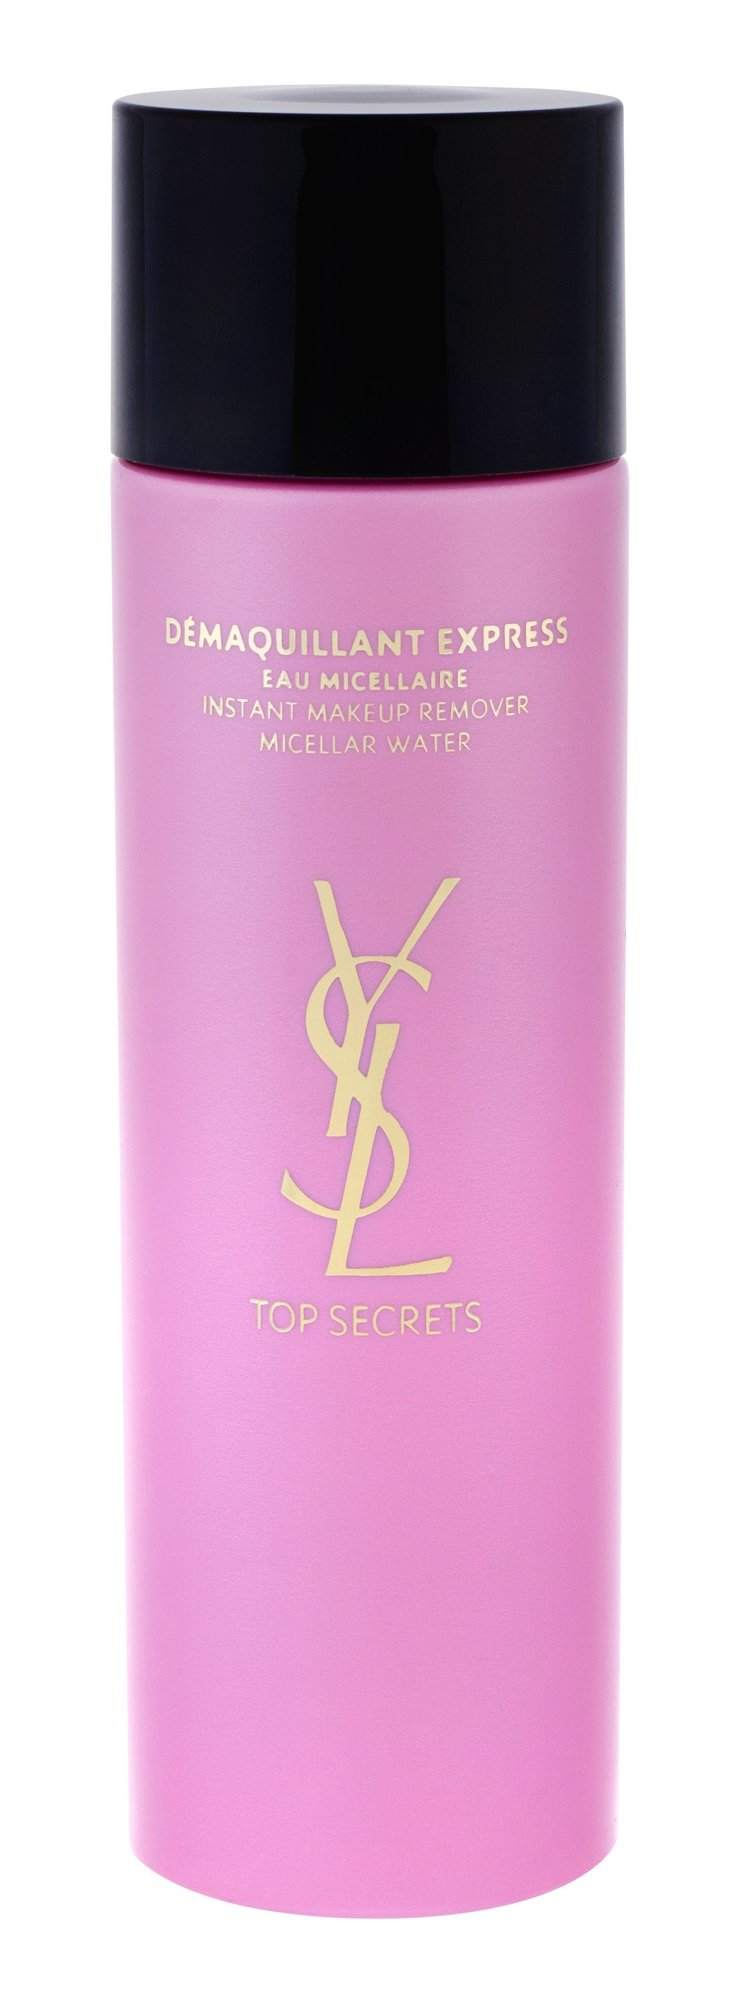 Yves Saint Laurent Top Secrets Micellar Water Cosmetic 200ml